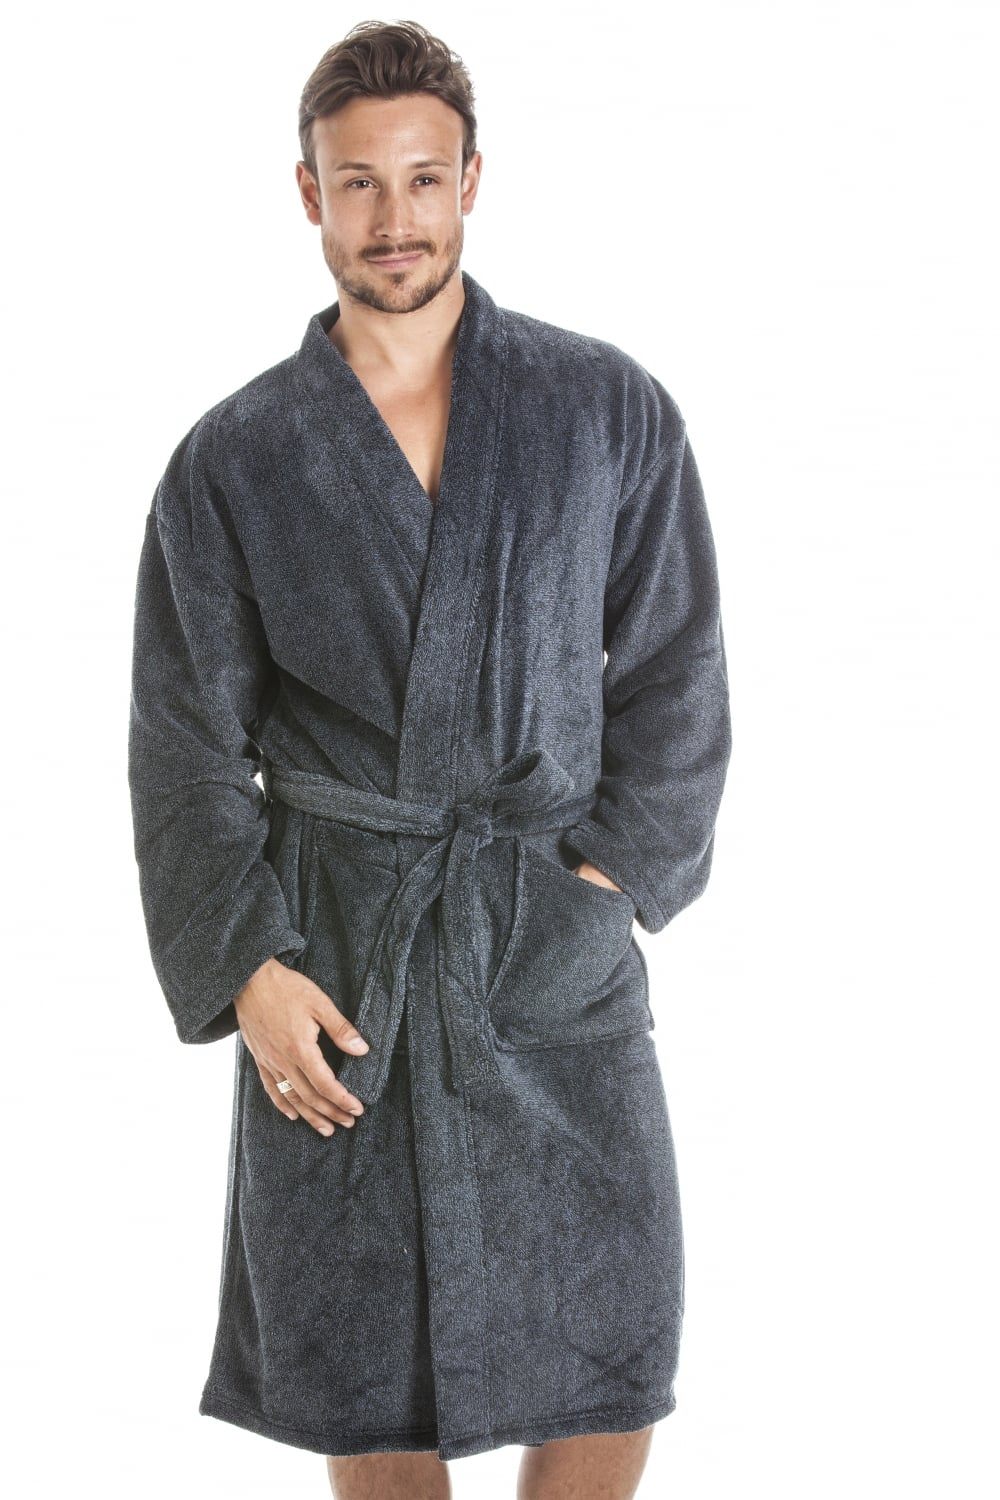 Find great deals on eBay for mens soft robe. Shop with confidence.